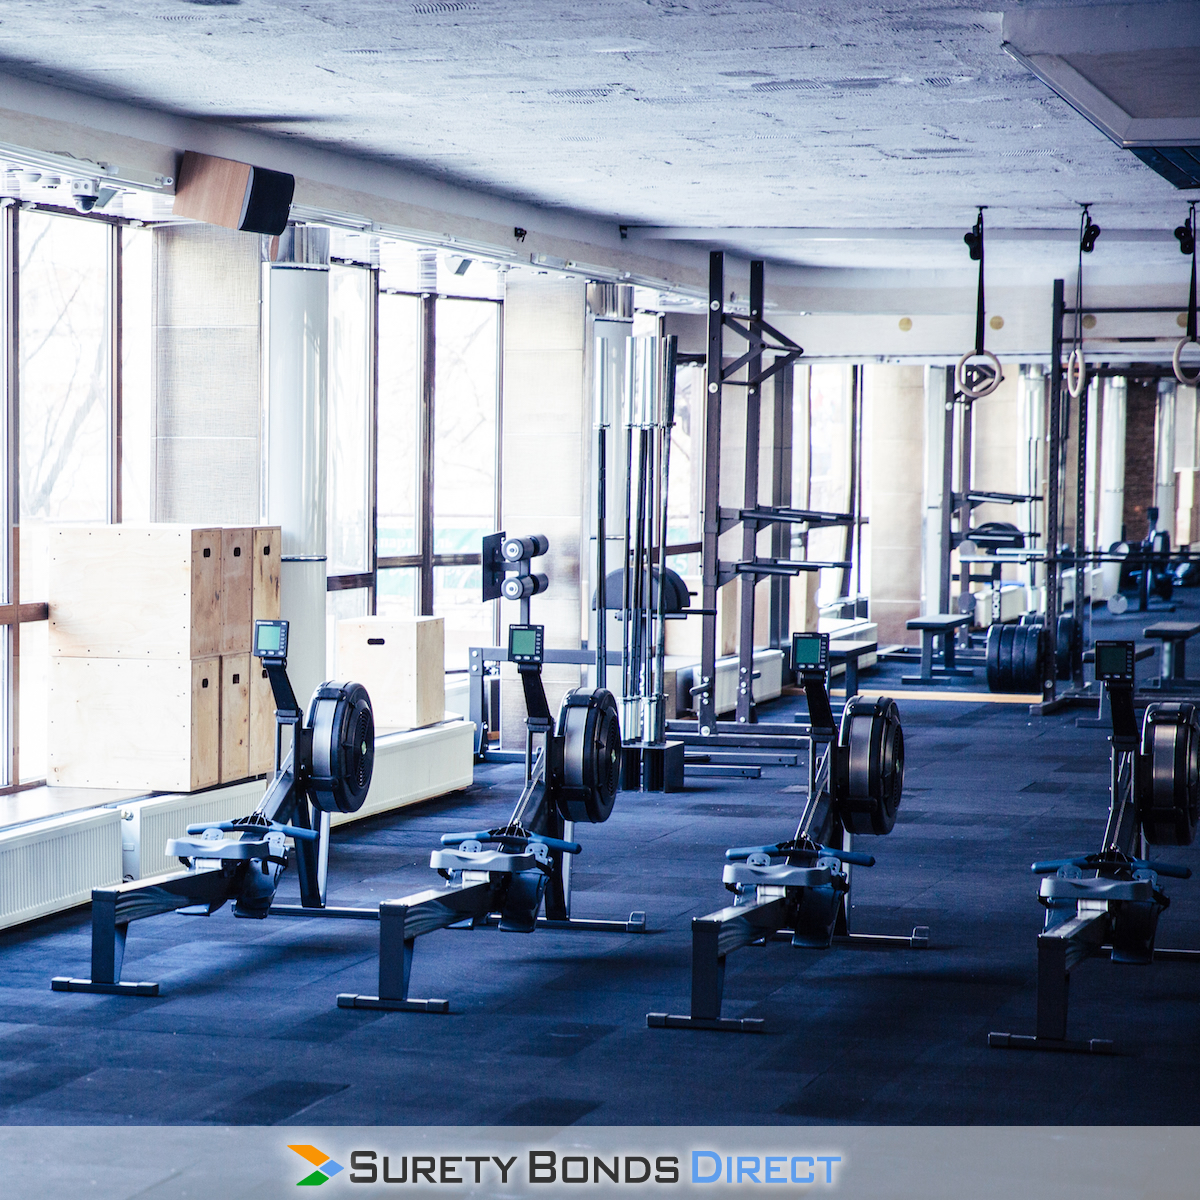 District of Columbia Health Club or Spa Bond | Surety Bonds Direct